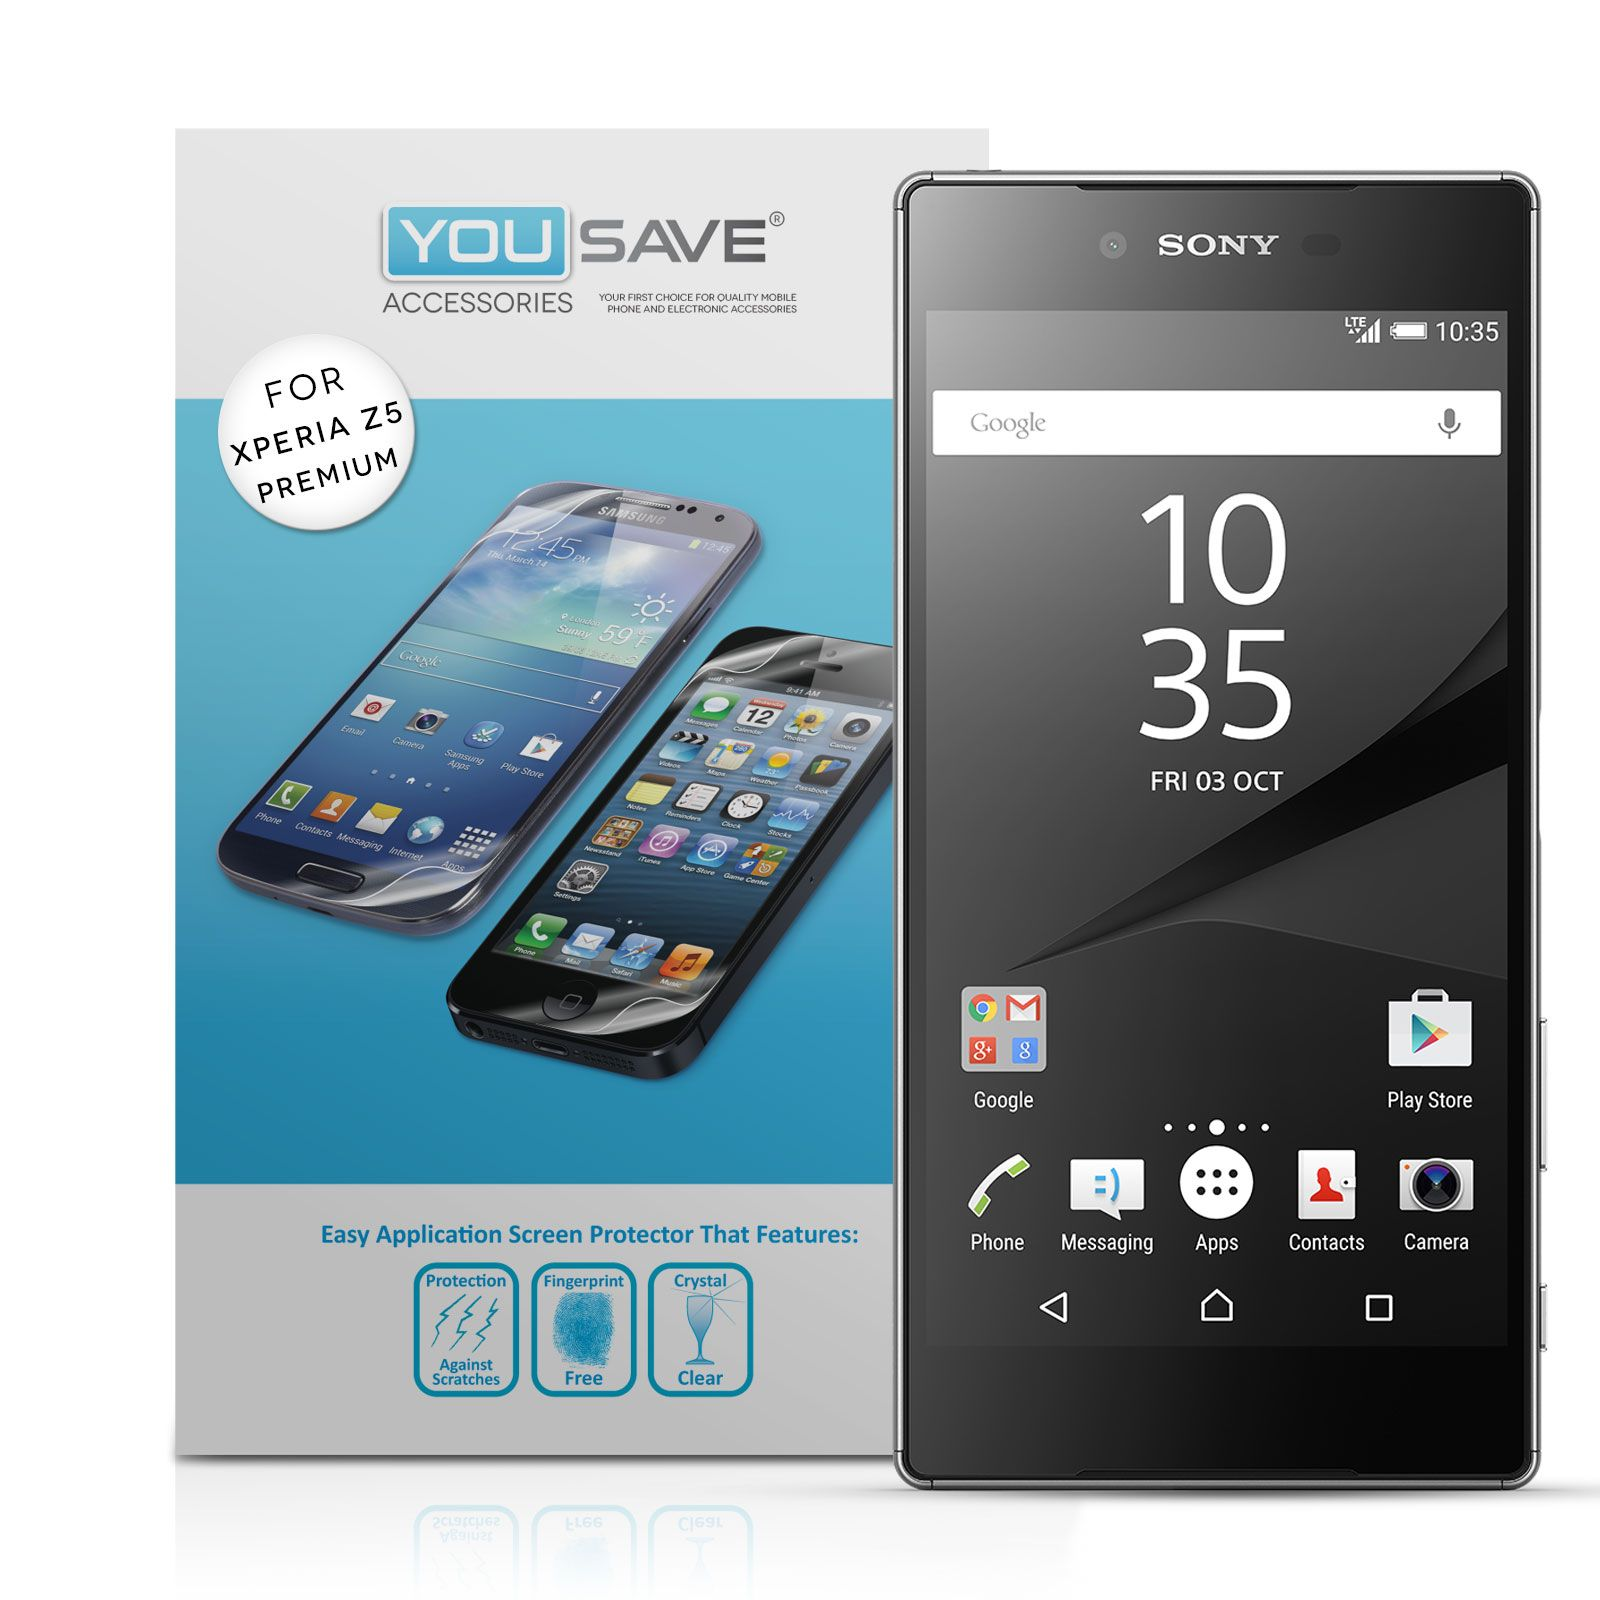 Yousave accessories sony xperia z5 premium screen protectors x5 yousave accessories sony xperia z5 premium screen protectors x5 mobile madhouse ccuart Gallery